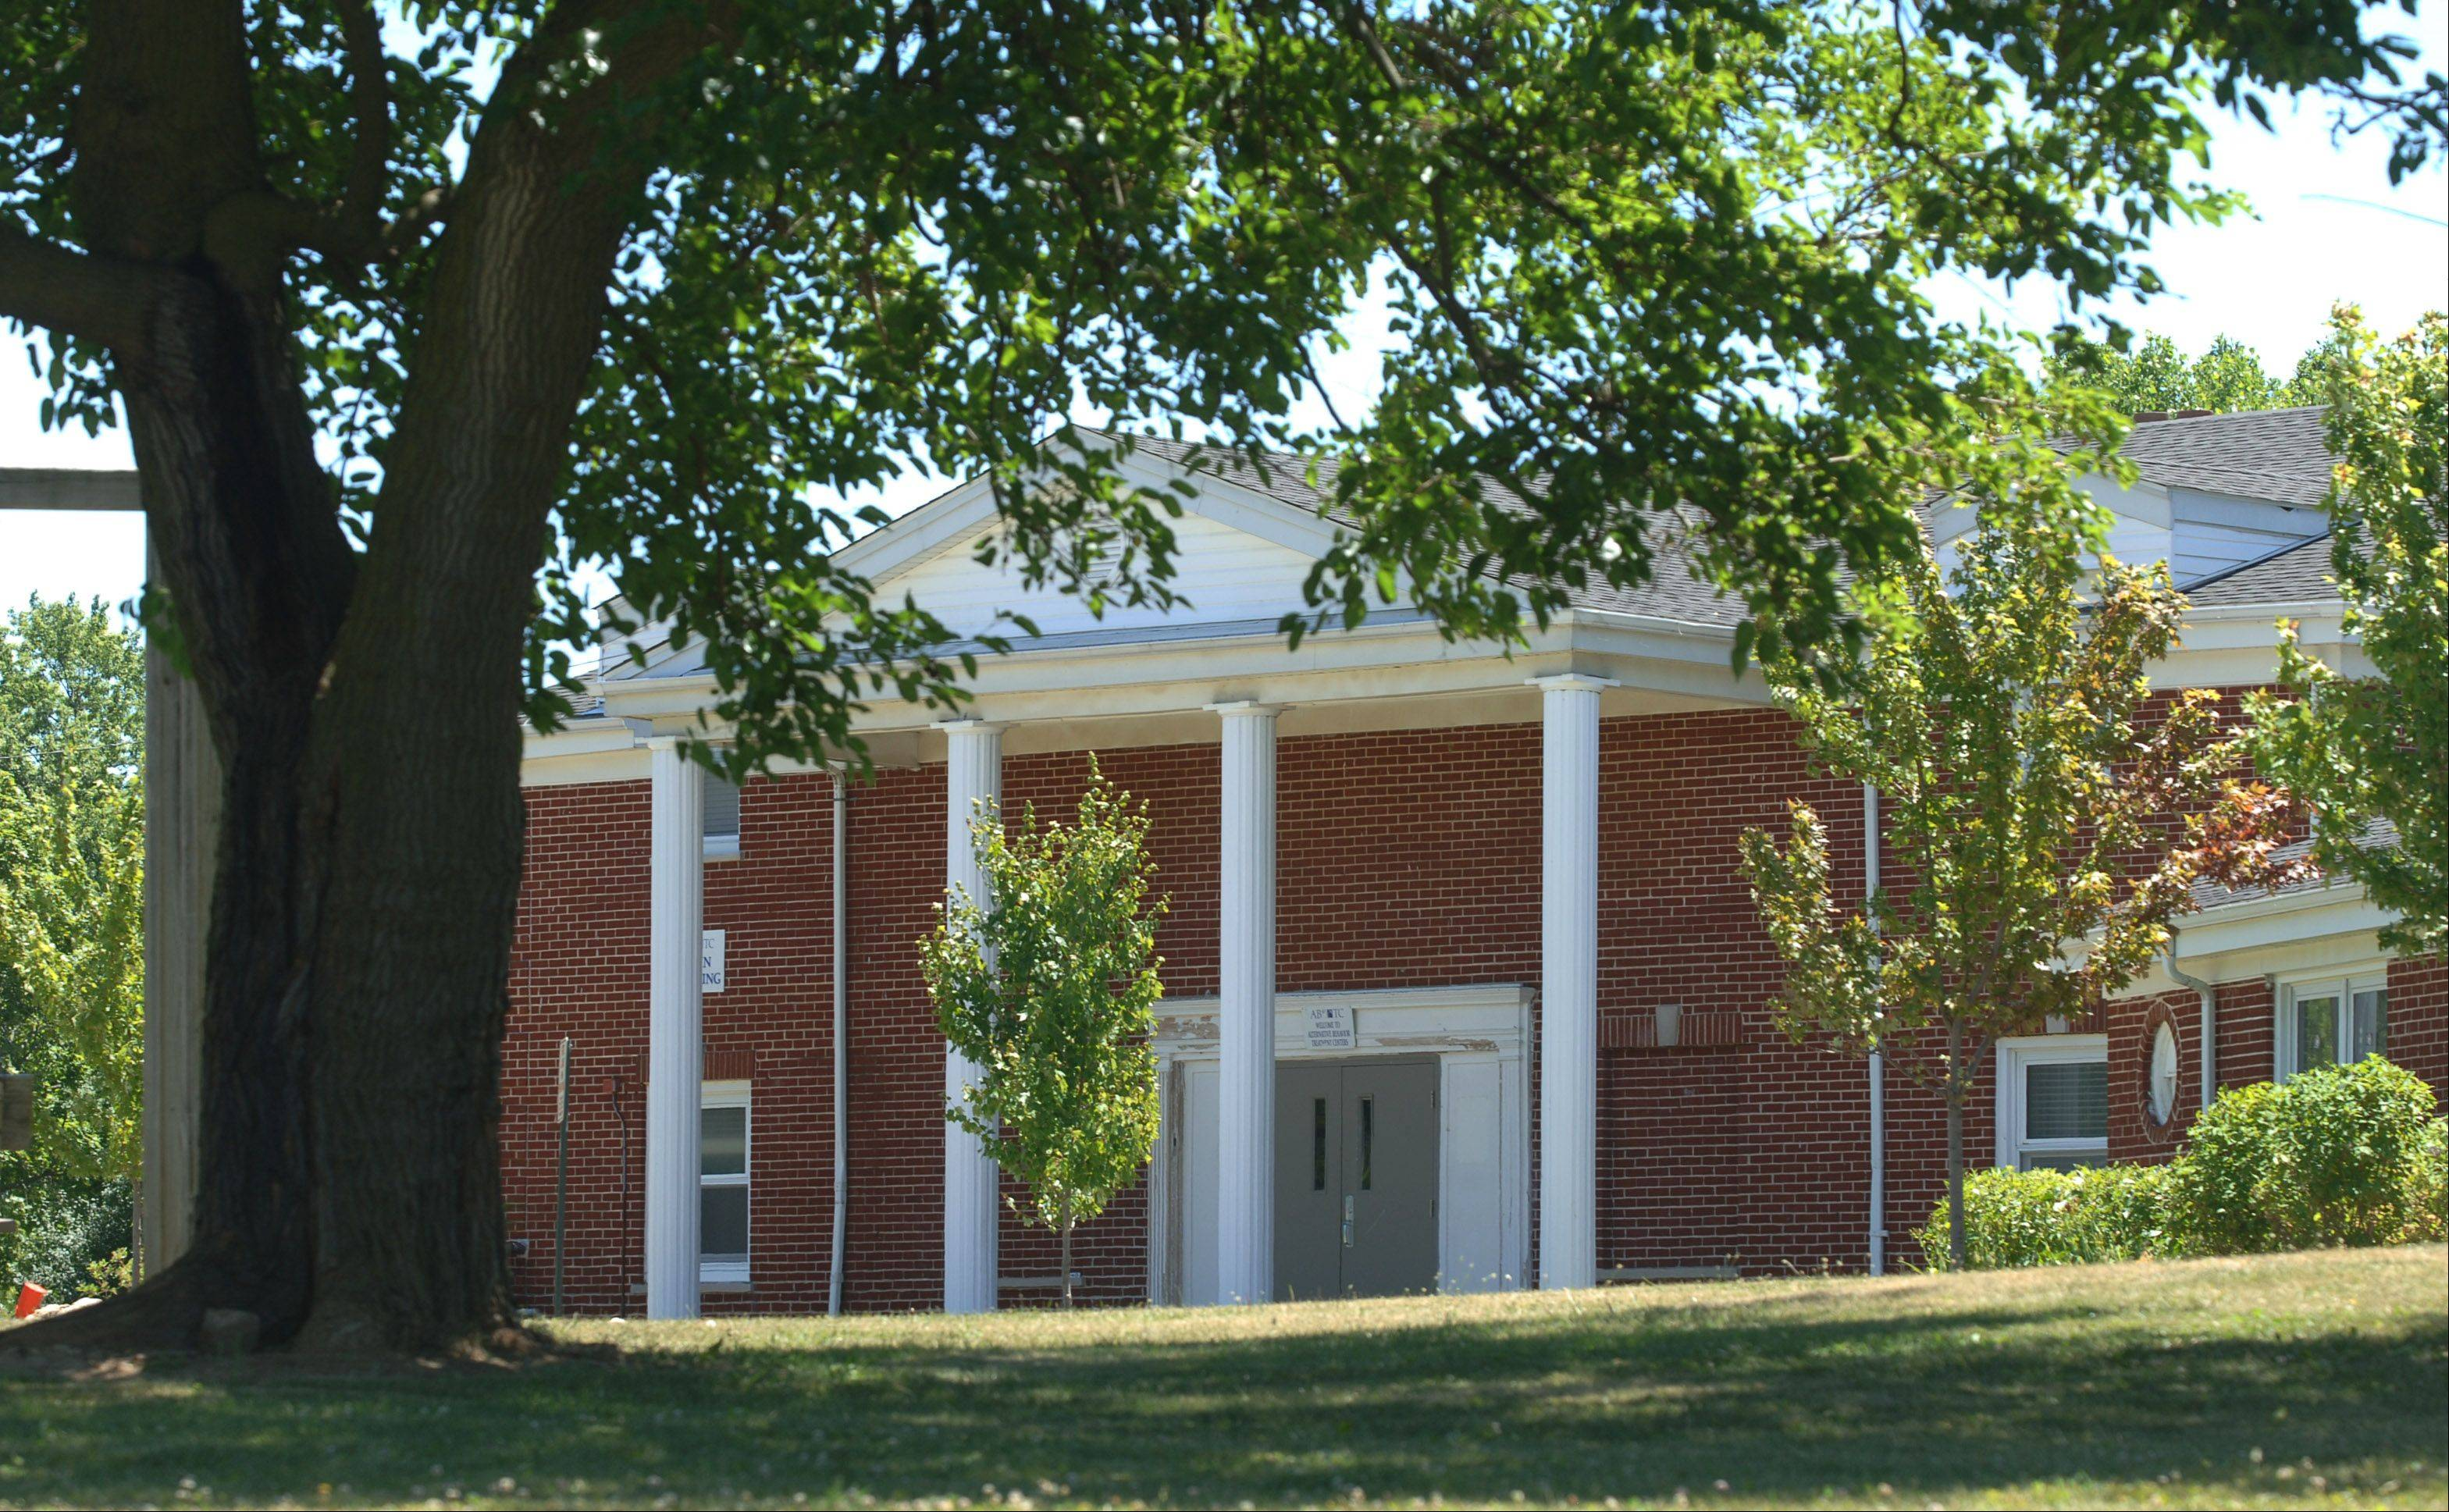 Dayspring Bible College and Seminary, in partnership with Quentin Road Bible Baptist Church, has purchased a 13½-acre campus east of Mundelein as a new home for the college.